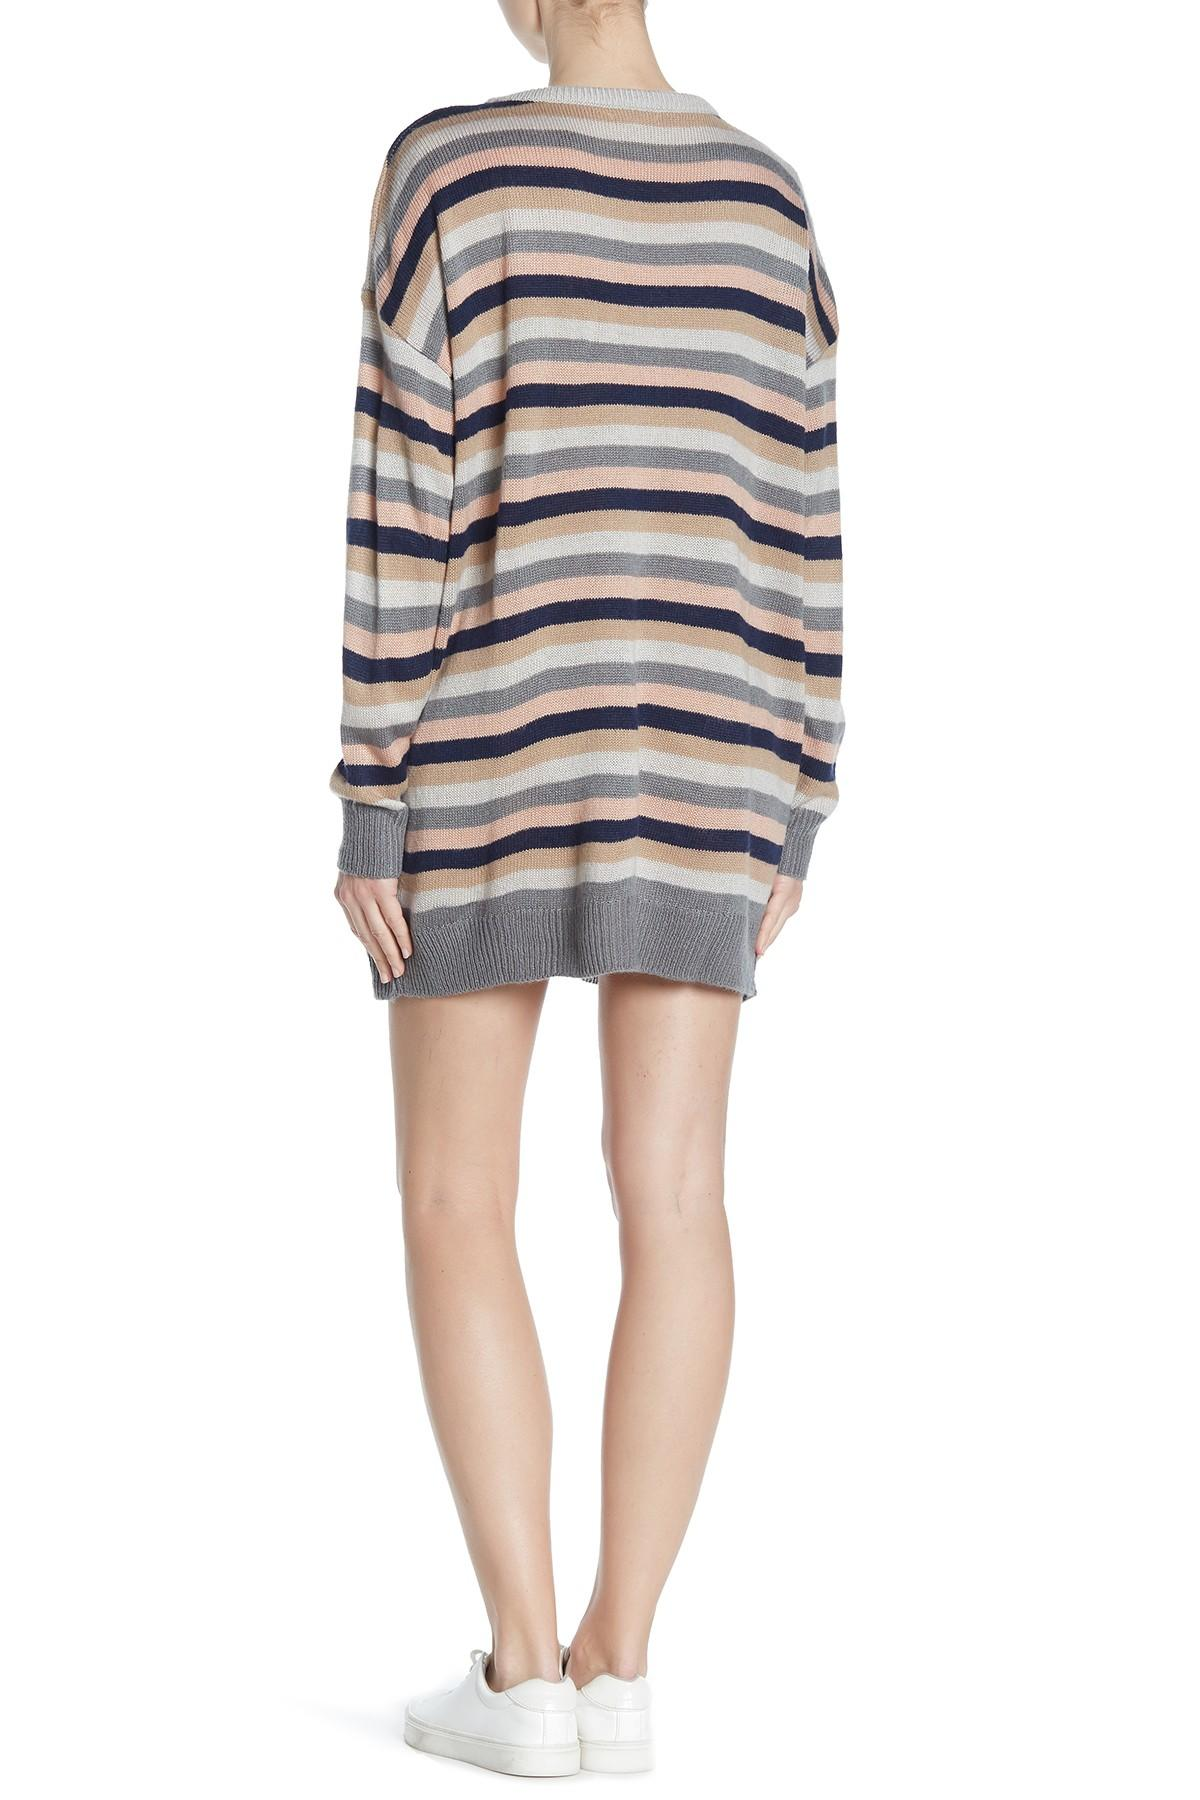 4f8dfa25ac Lyst - Tularosa X Revolve Hamptons Dress - Save 54%